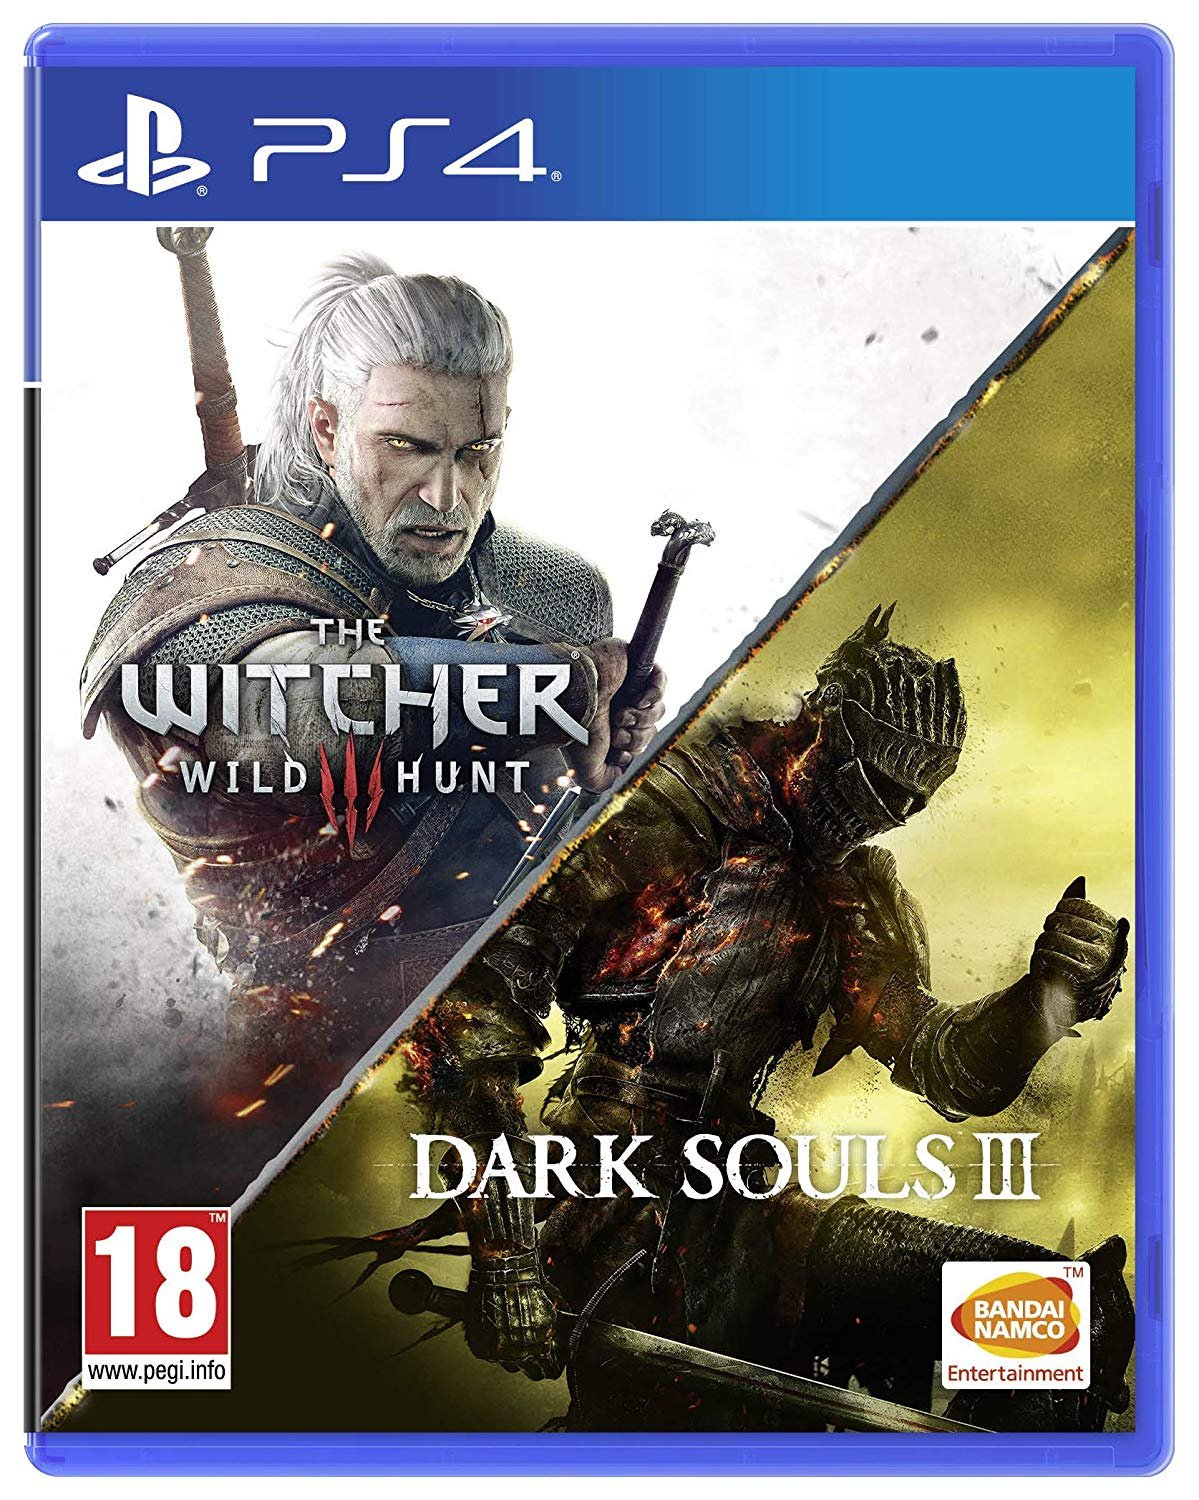 Dark Souls III & The Witcher 3 Wild Hunt Compilation PS4, PS4, DVDMEGASTORE, DVDMEGASTORE